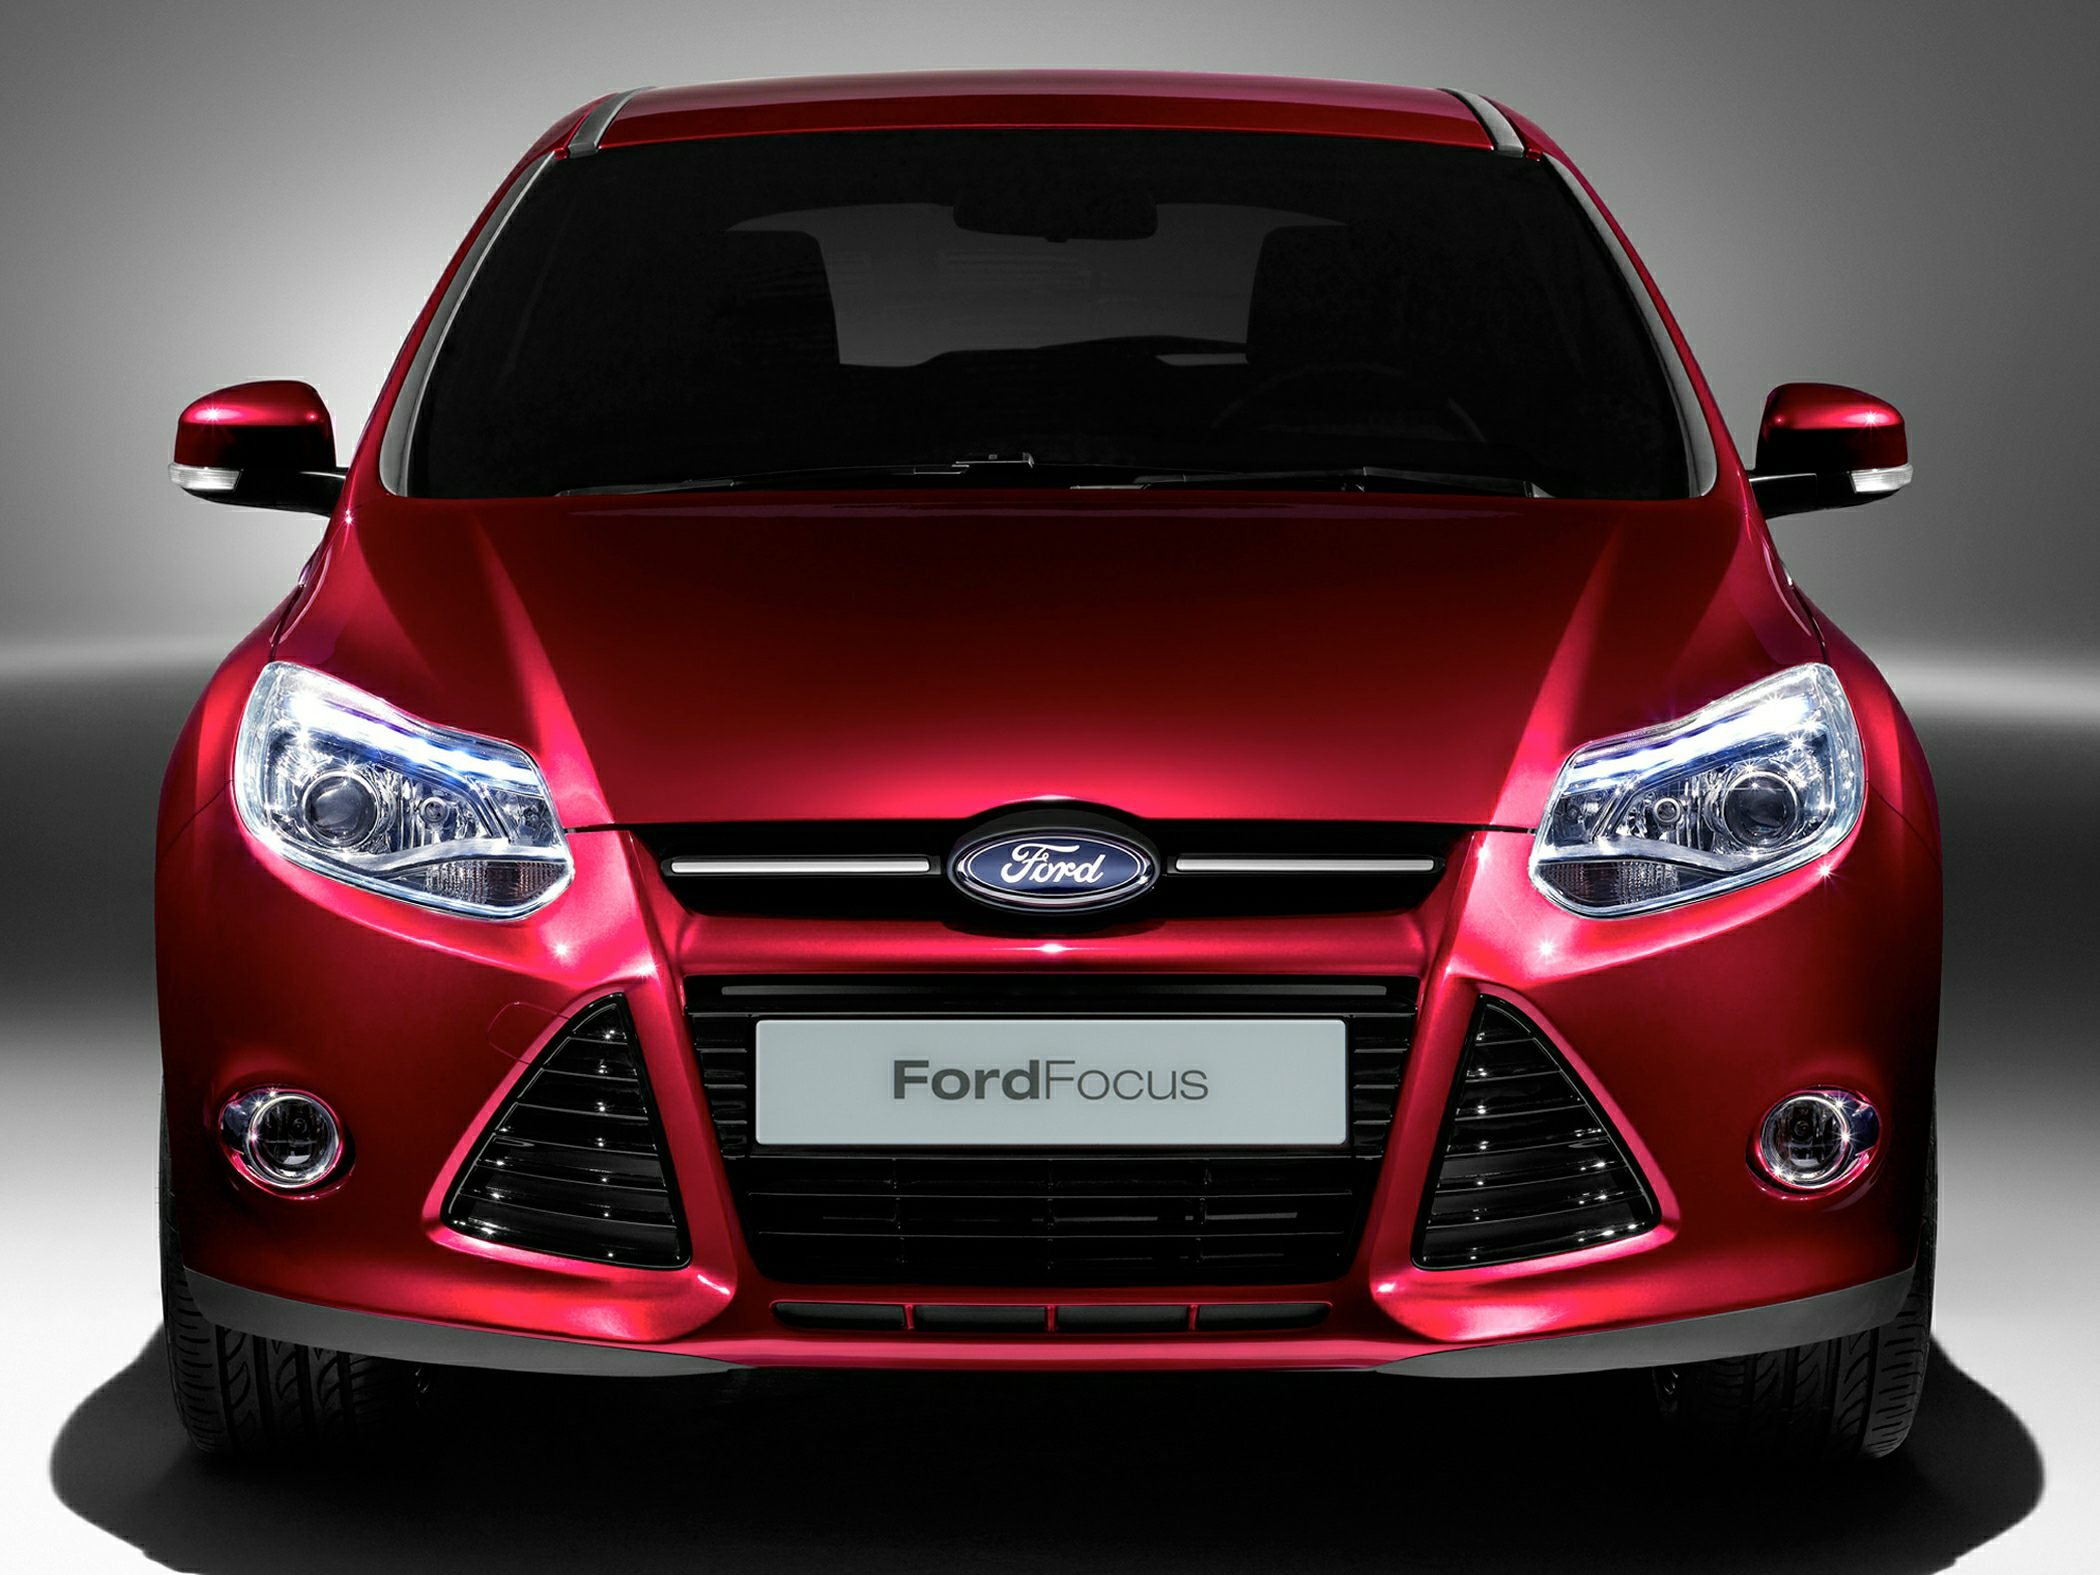 ford focus wagon iii 2014 images